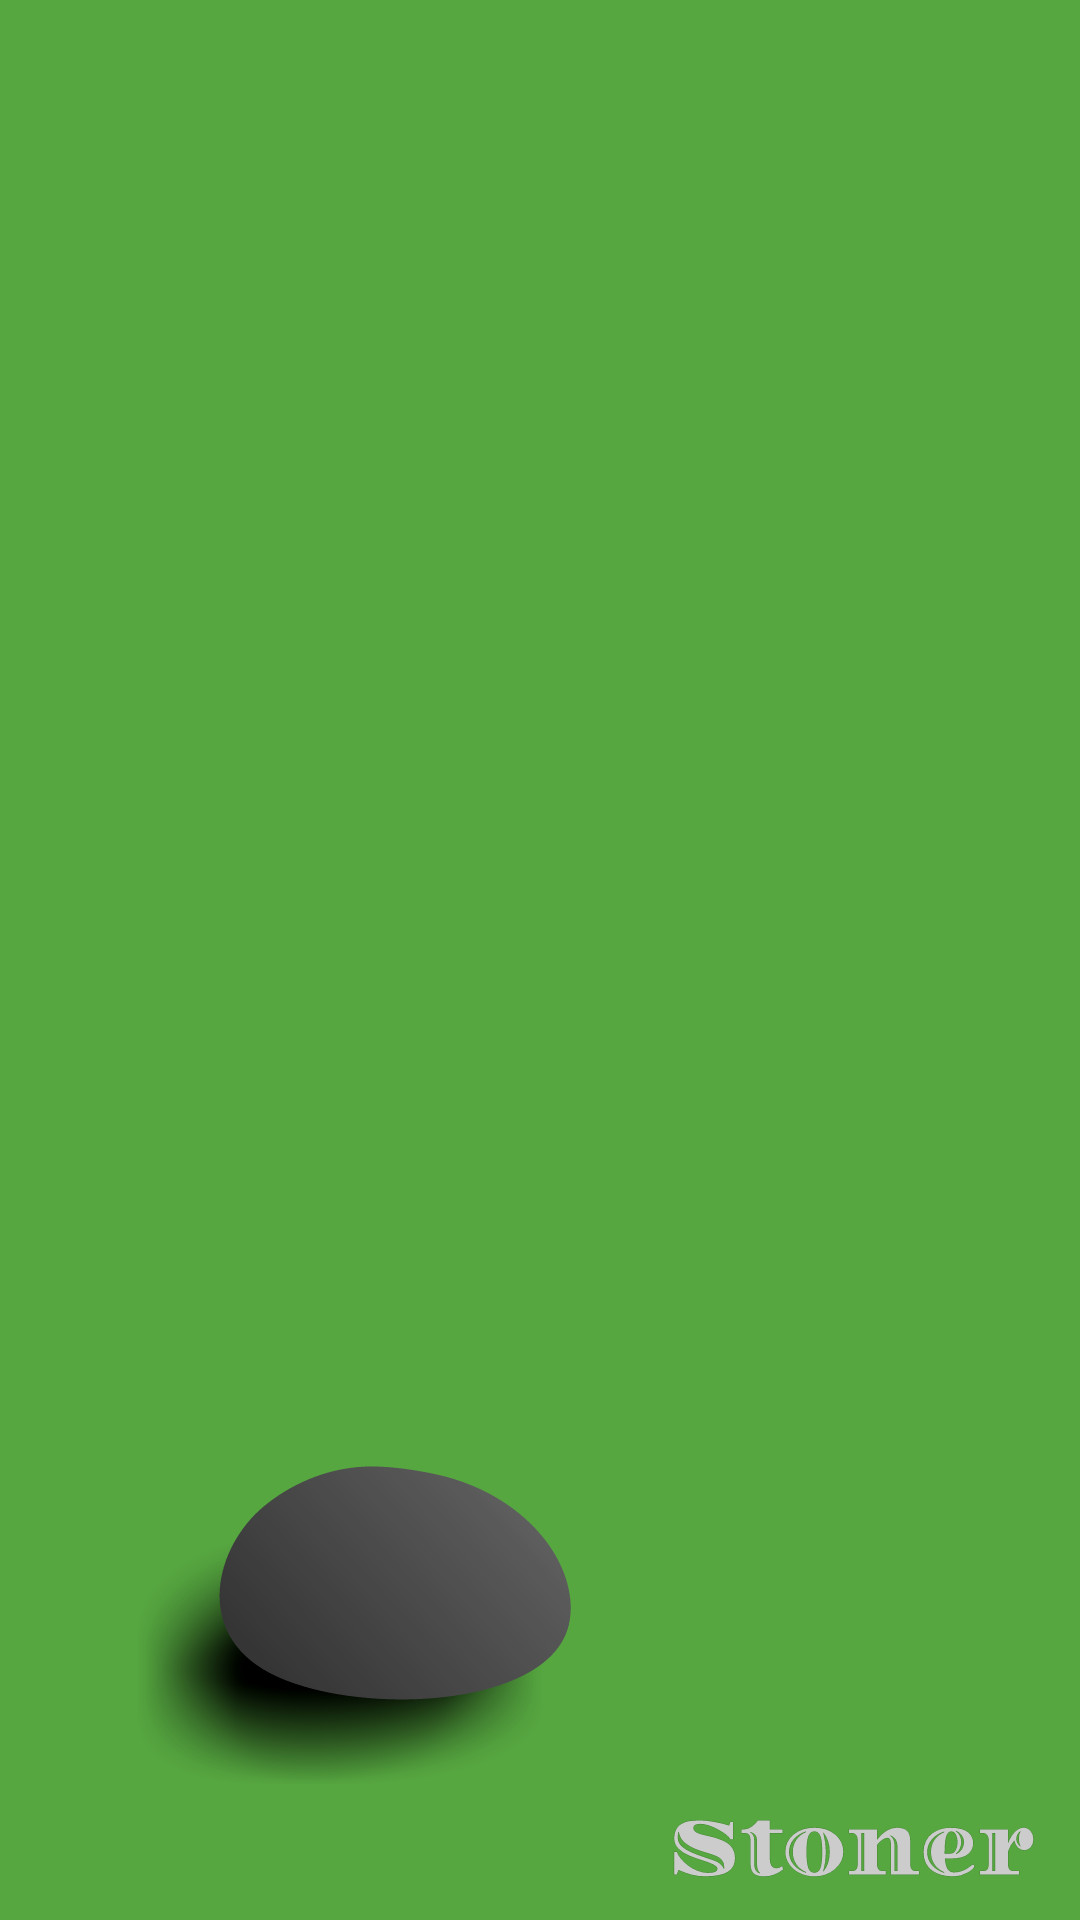 Stoner Need #iPhone #6S #Plus #Wallpaper/ #Background for #